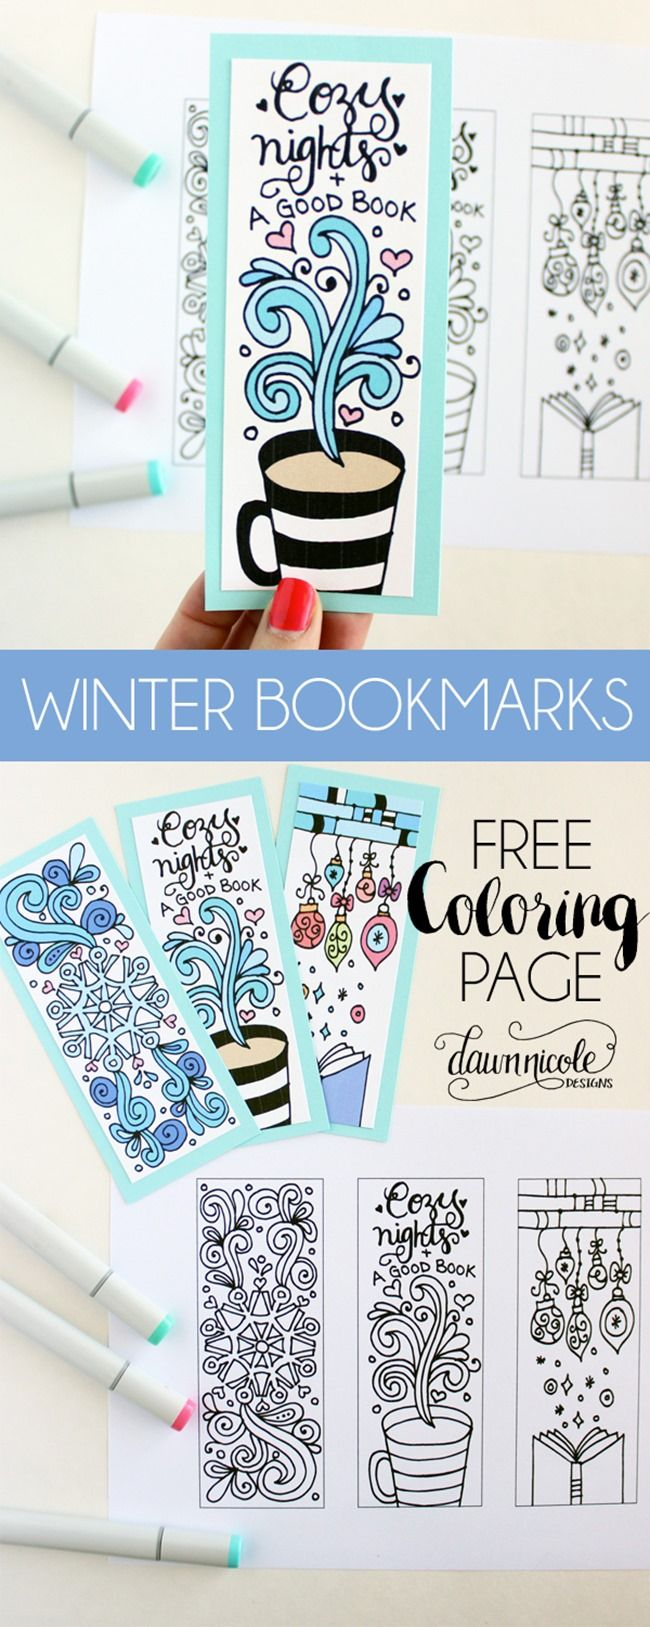 Christmas Printable Coloring Page - Winter bookmarks